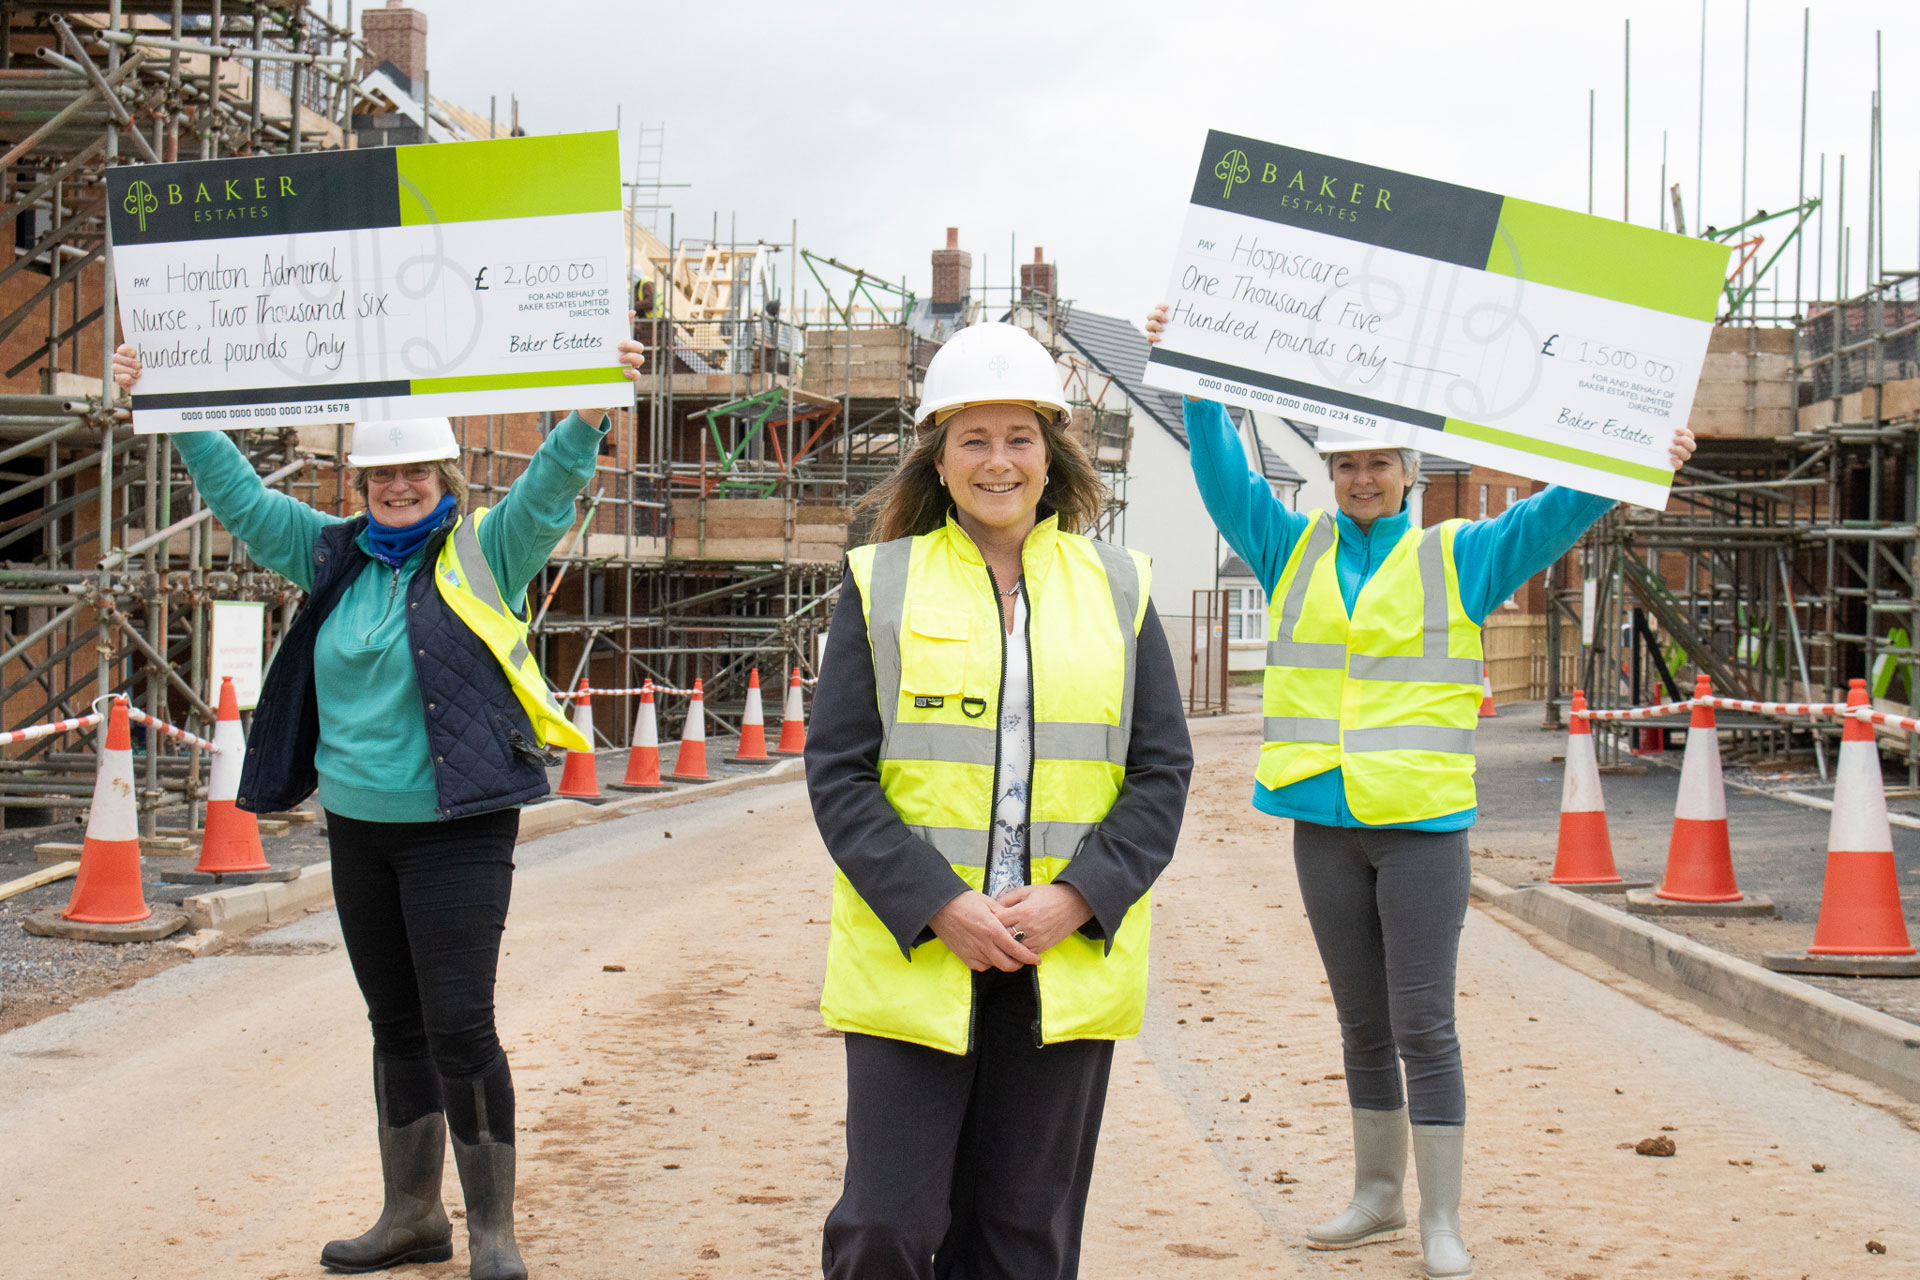 Hospiscare Heroes – From sponsored runs to housebuilder donations